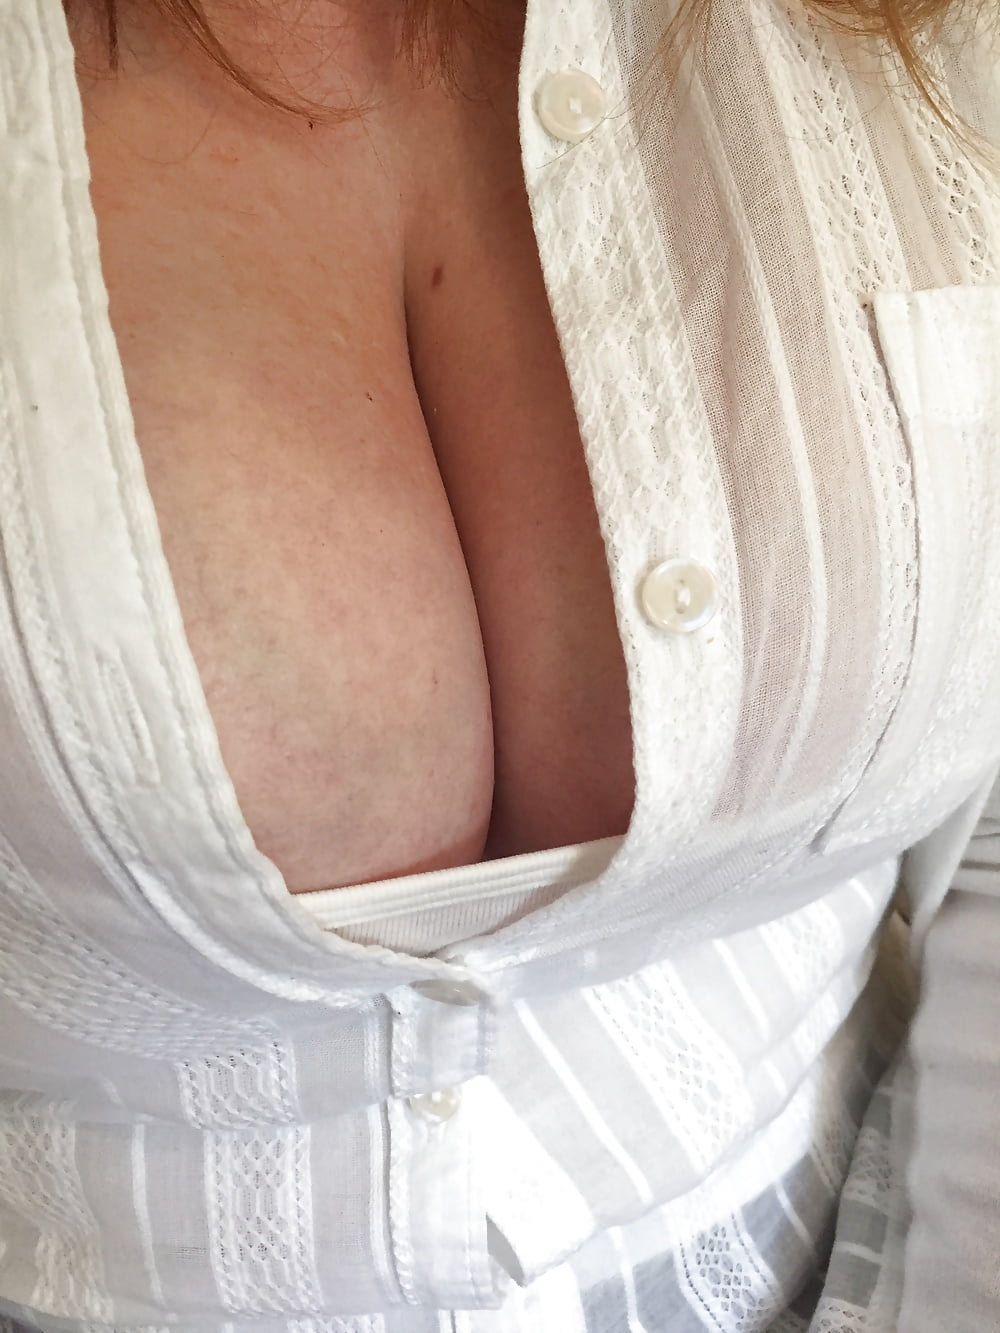 Homemade Pussy Pounding